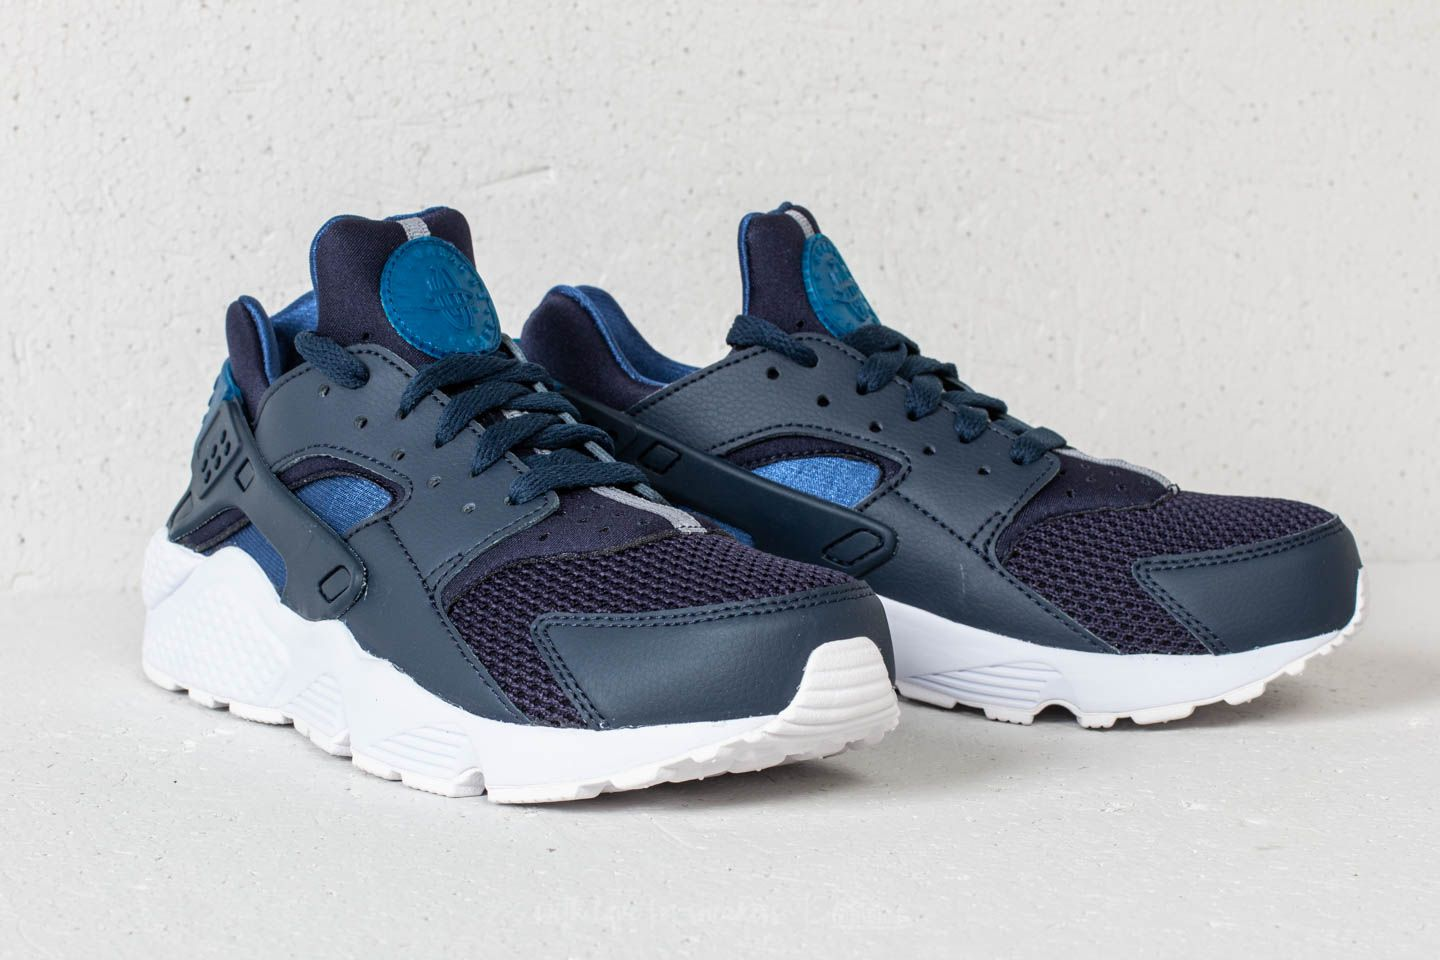 meet 2f709 c6441 Nike Air Huarache Obsidian Gym Blue-White at a great price £105 buy